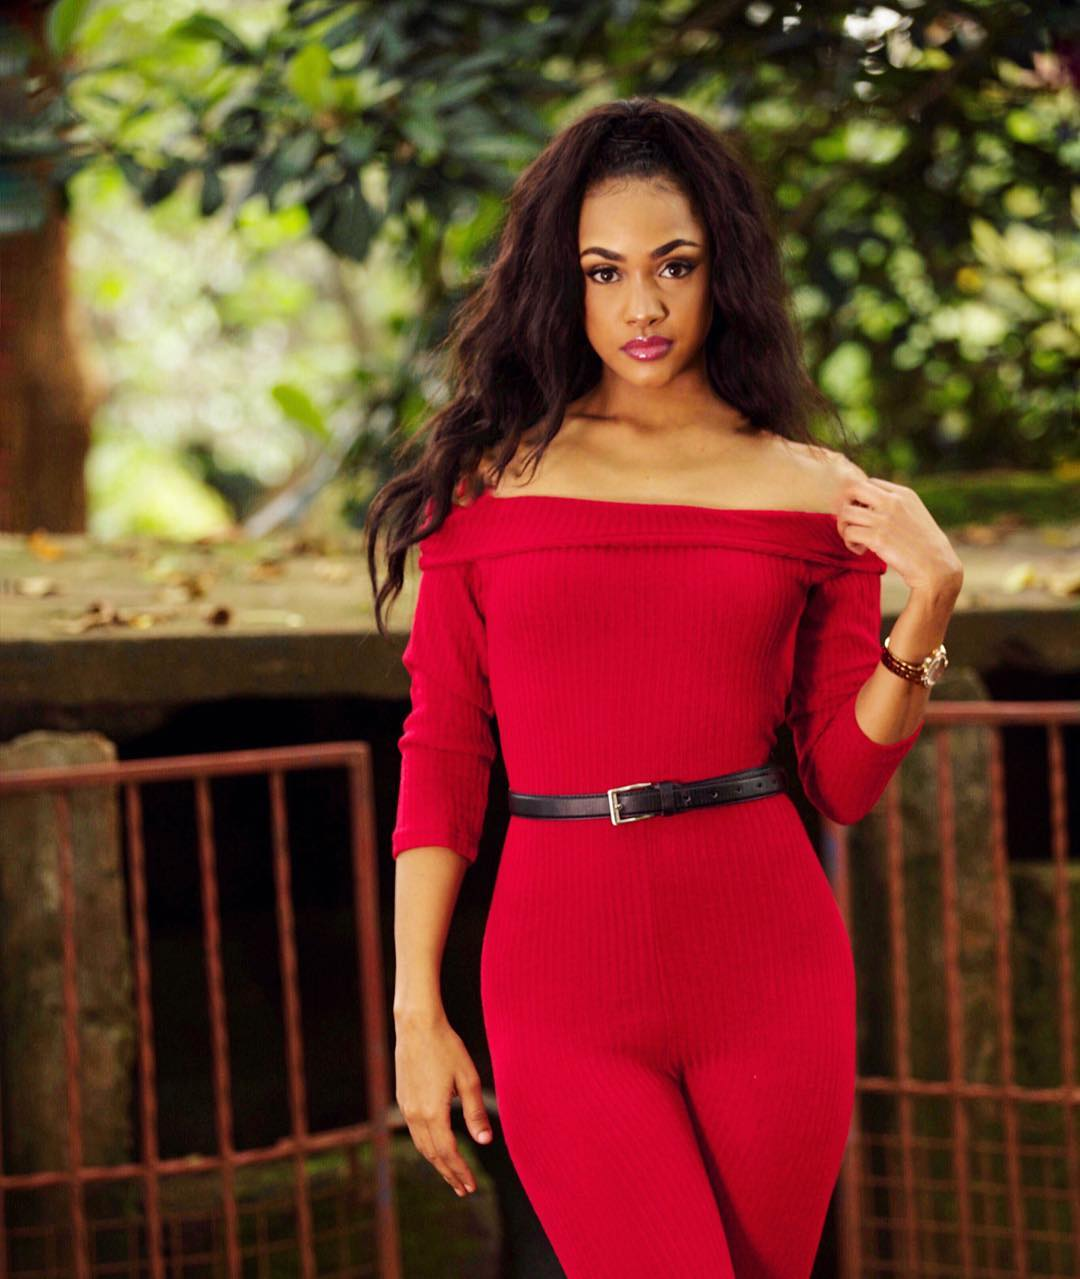 Tanasha Donna looking good in red - Will Tanasha be able to keep Diamond Platnumz from cheating? (opinion)